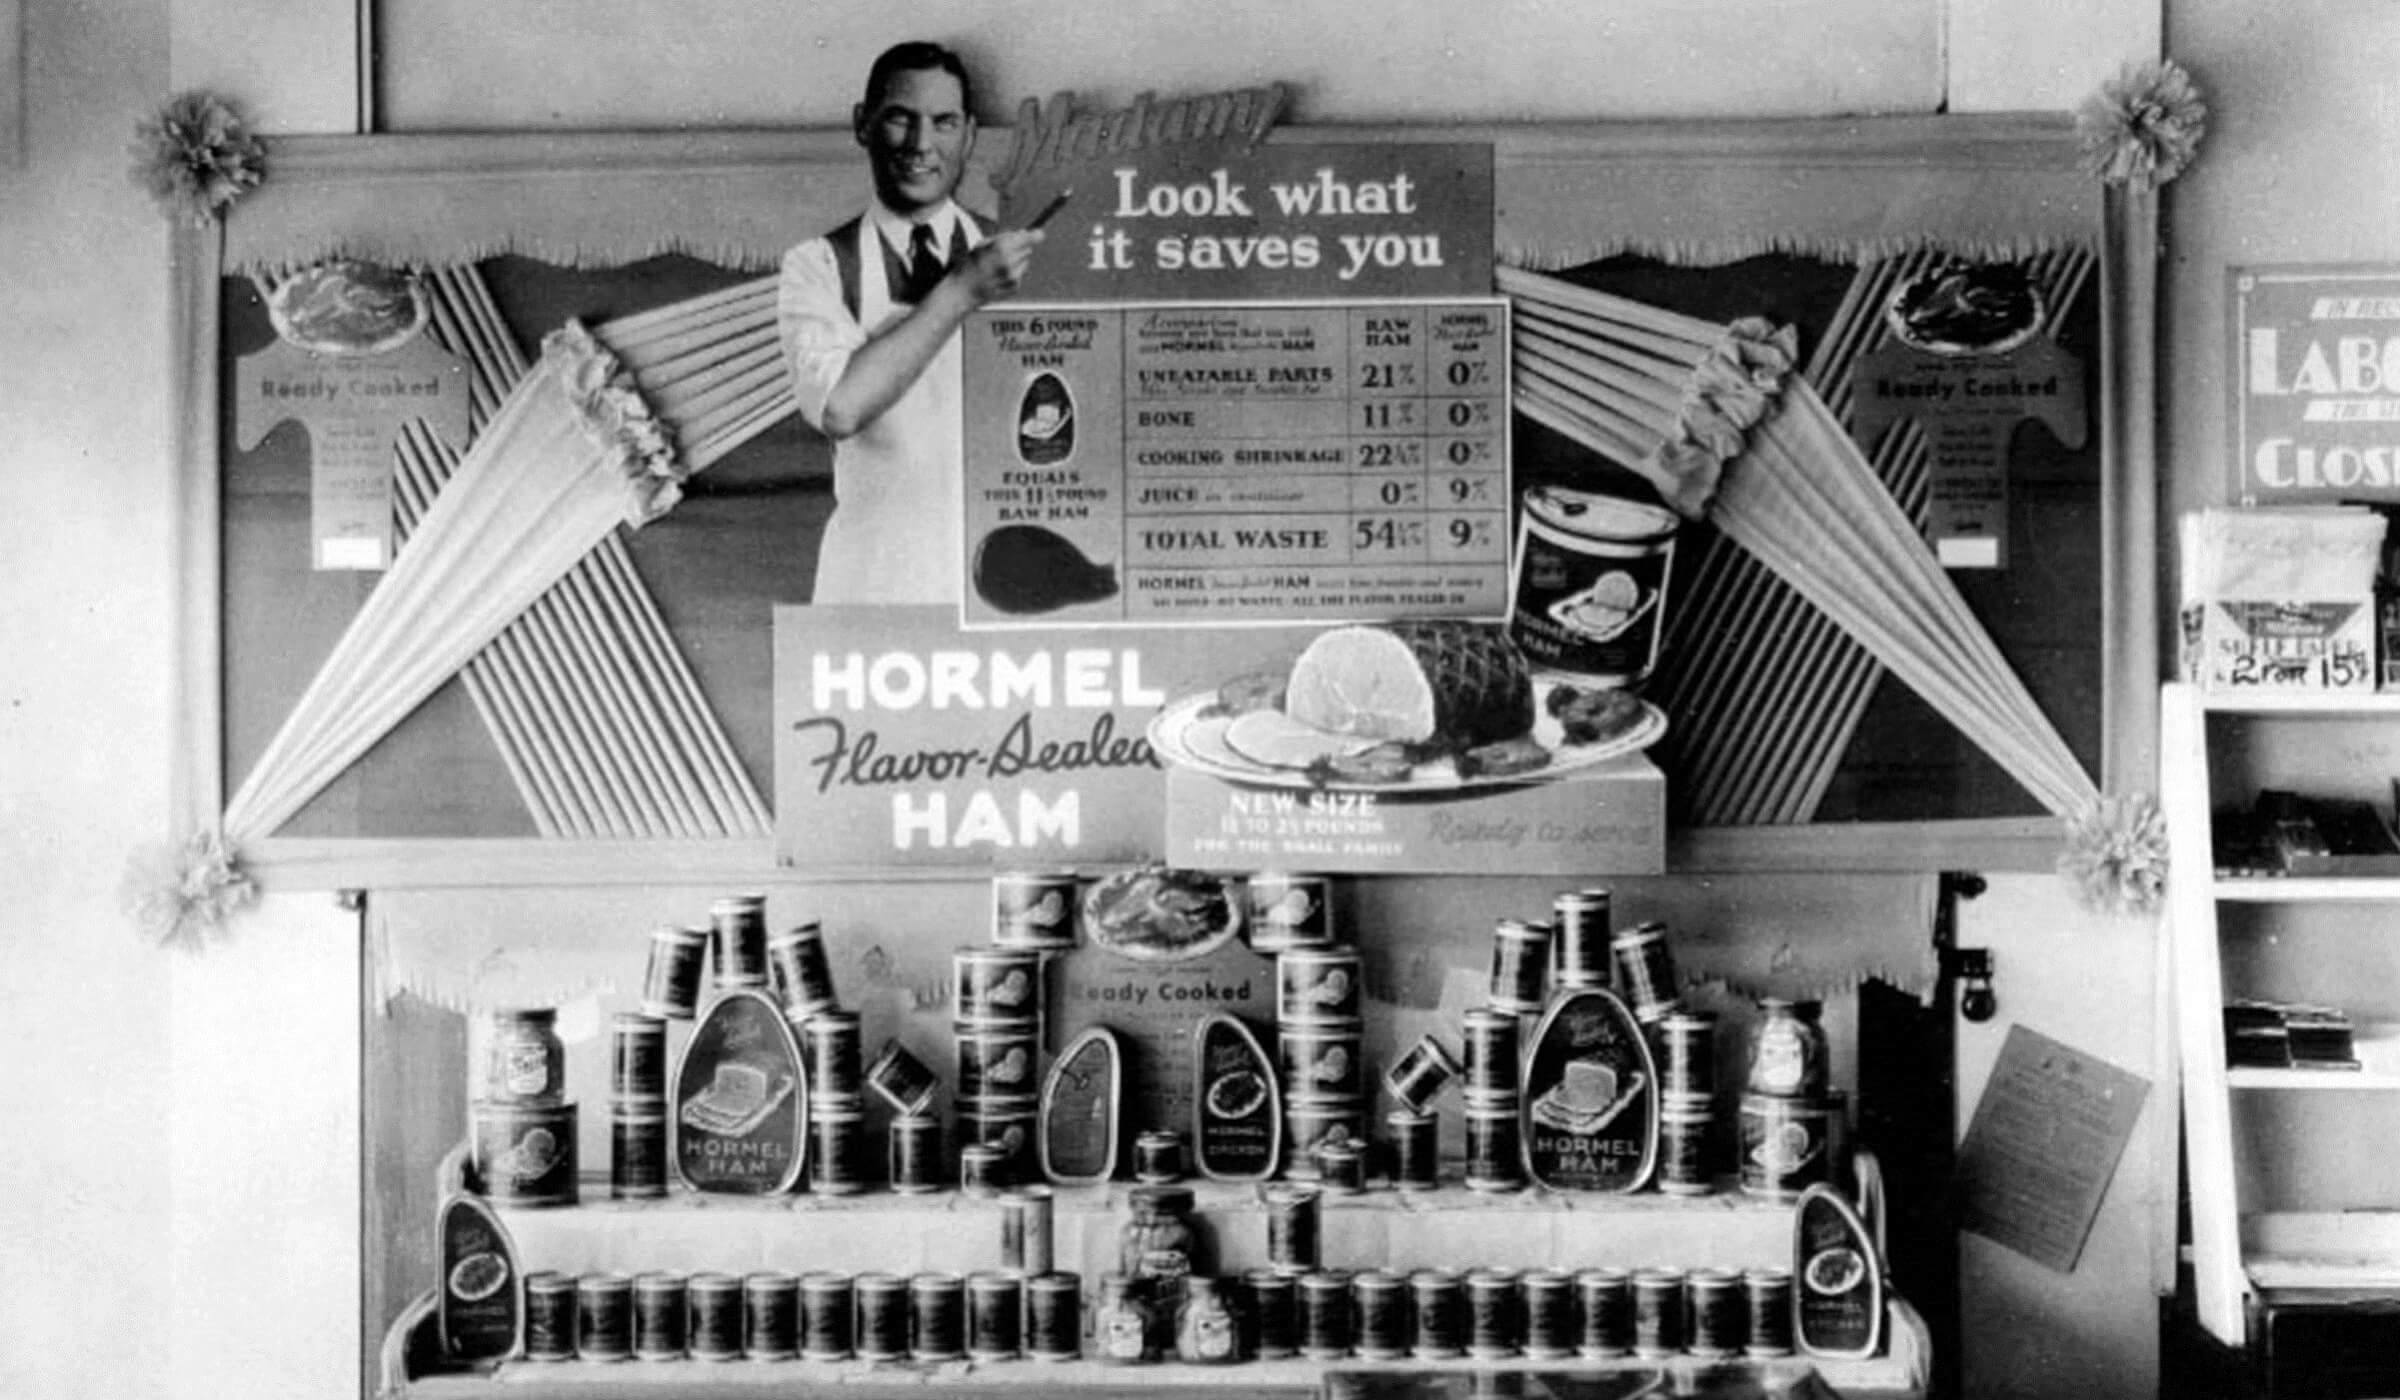 Historic Hormel Foods ham advertisement